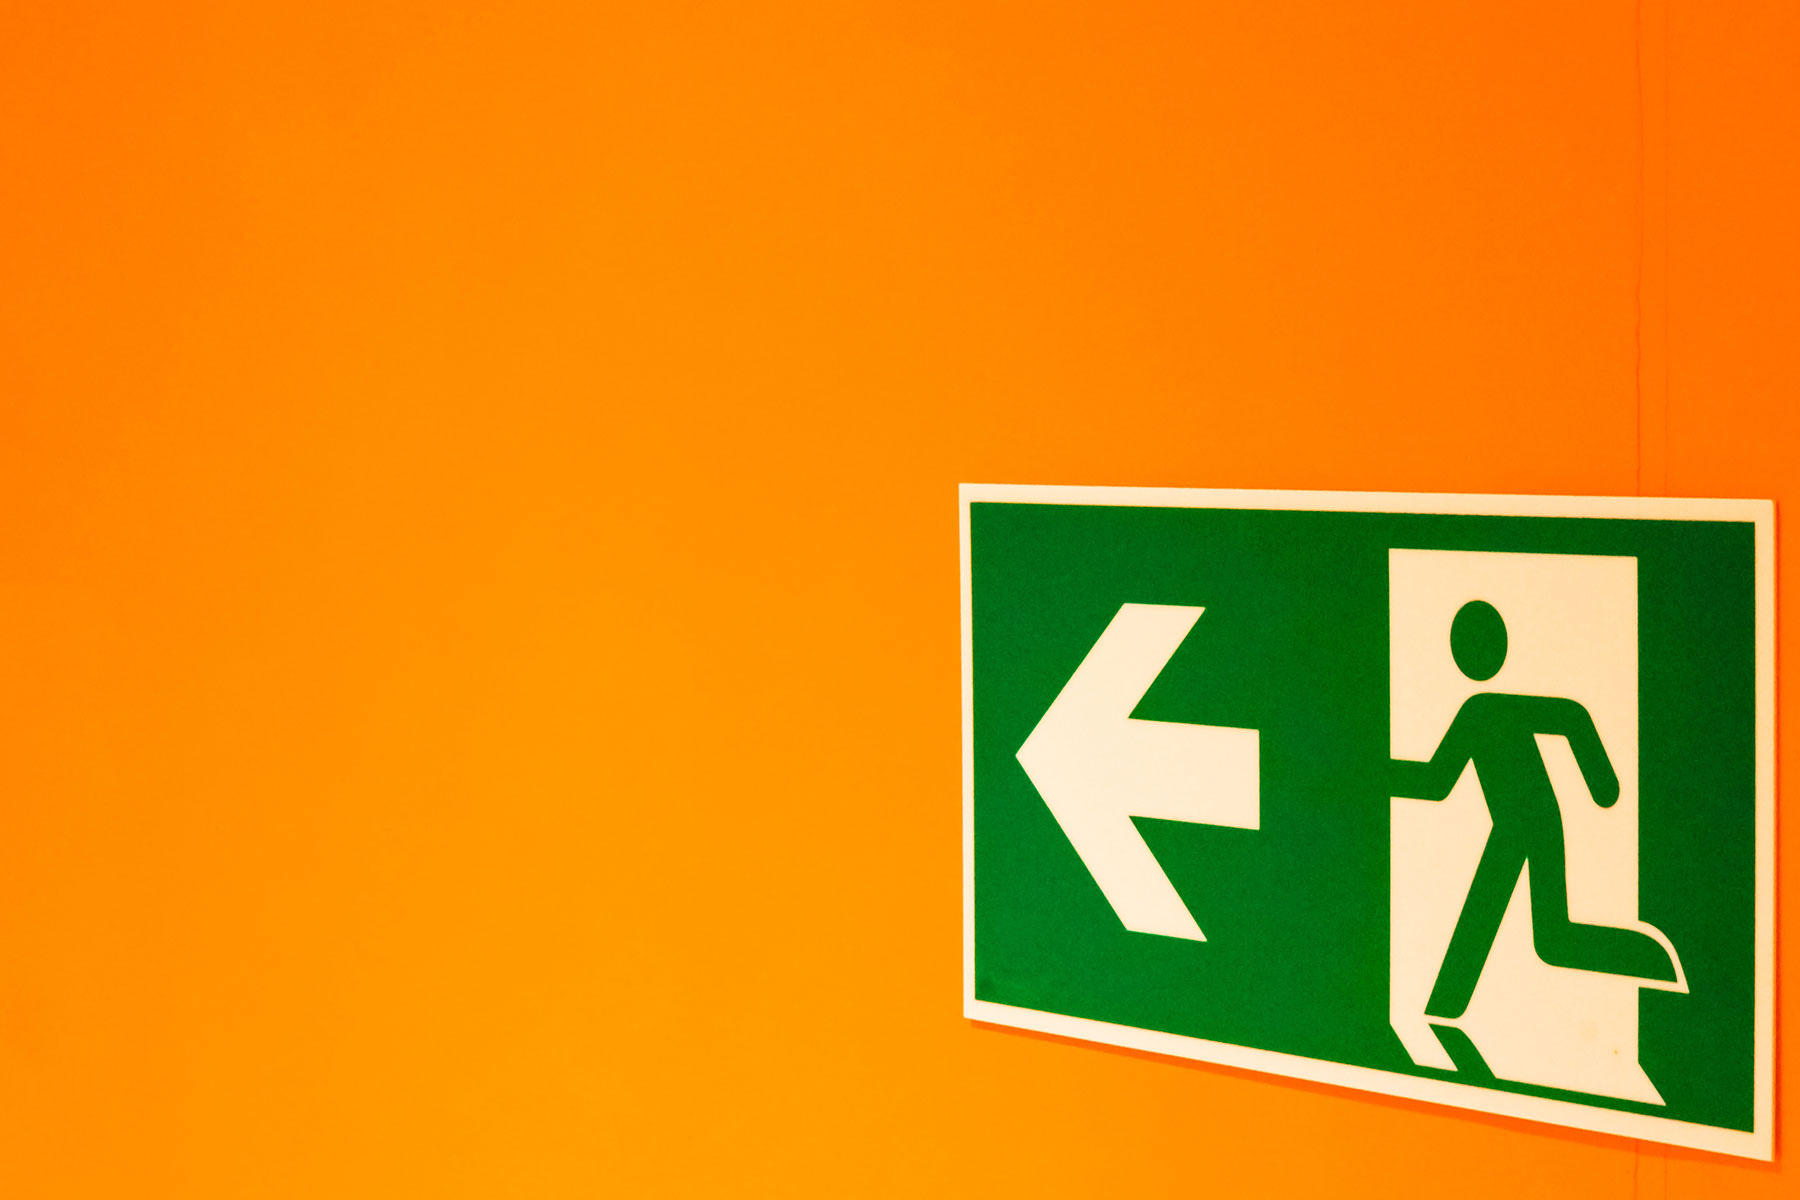 4 key elements to consider in an emergency evacuation plan in the workplace